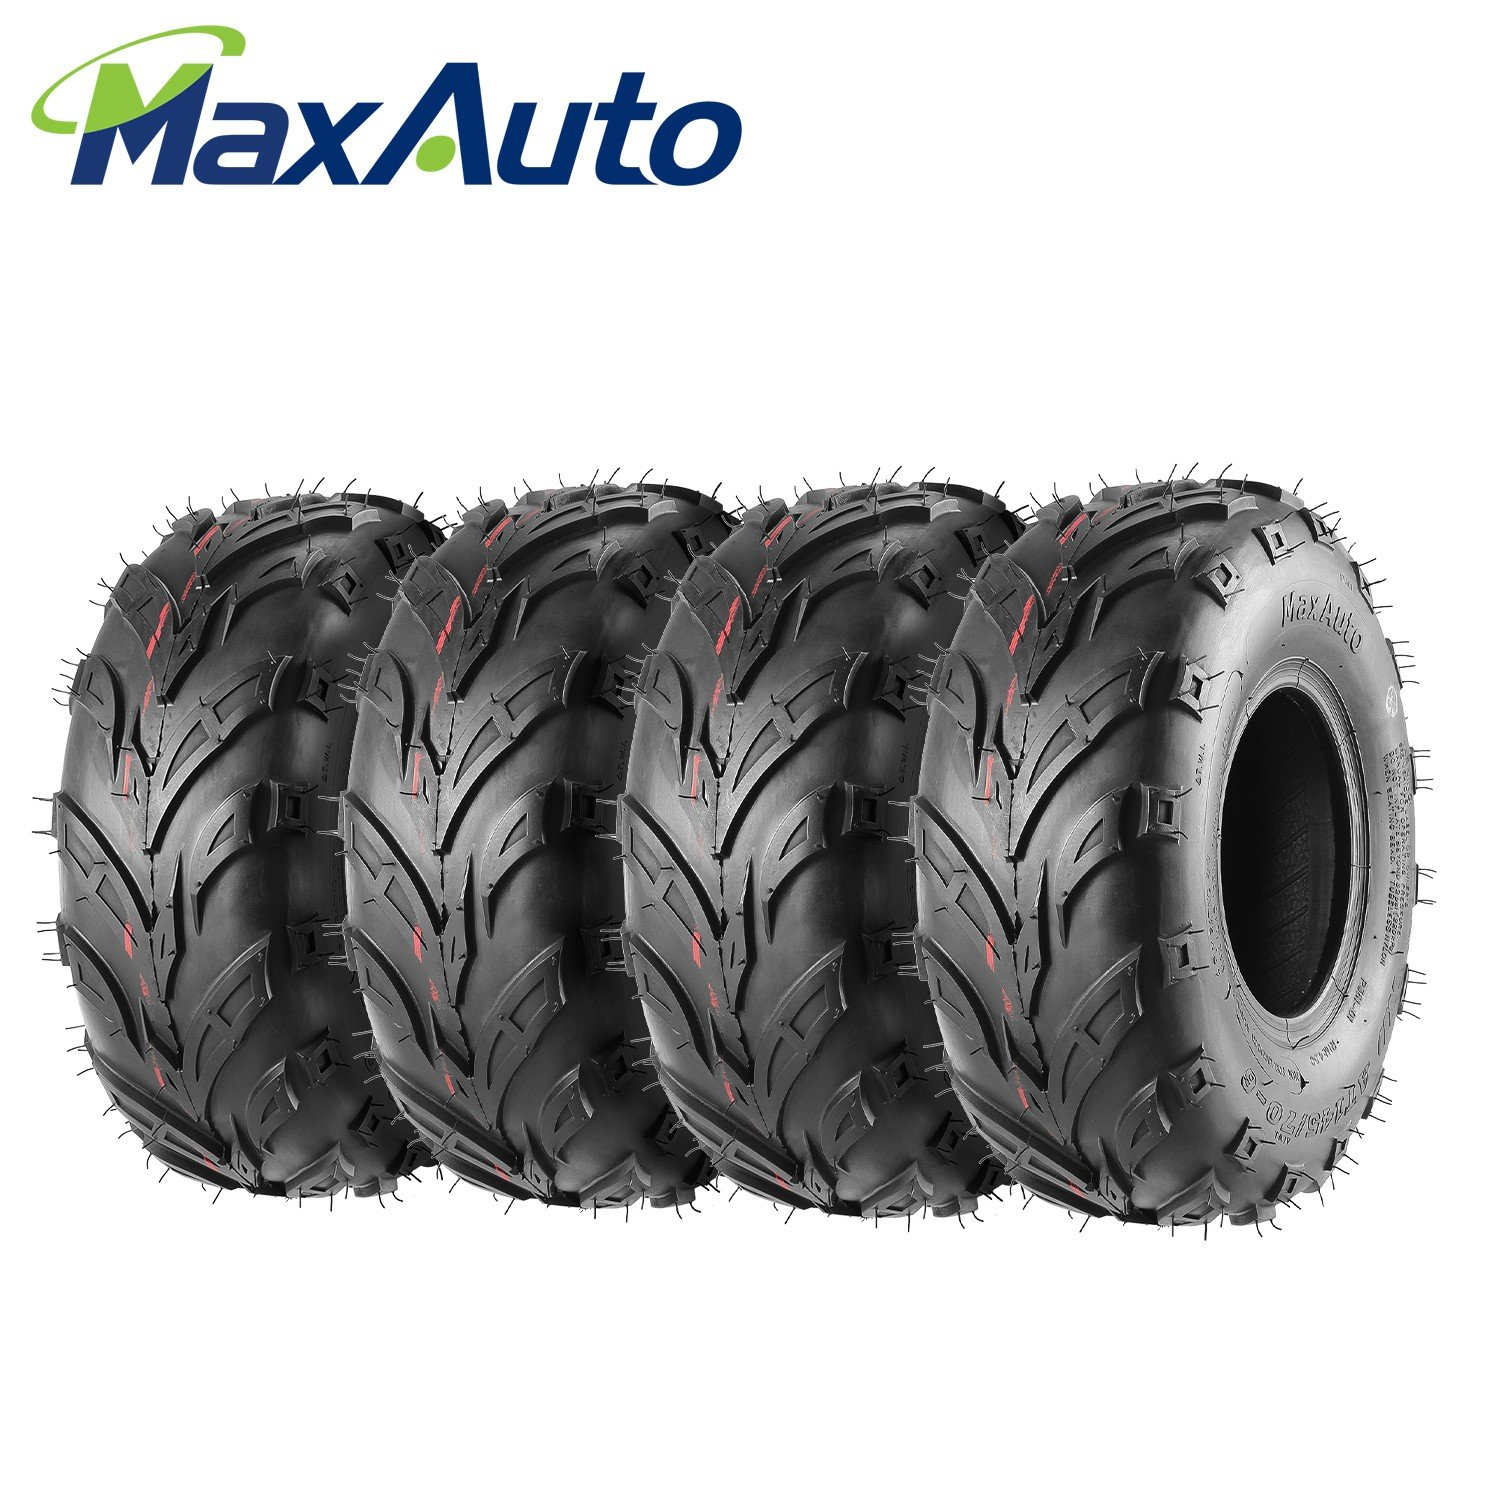 Pack of 4 Sport ATV Tires 145/70-6, 145x70-6 4Ply Go-Kart Lawn mini bike Tires by MaxAuto (Image #1)